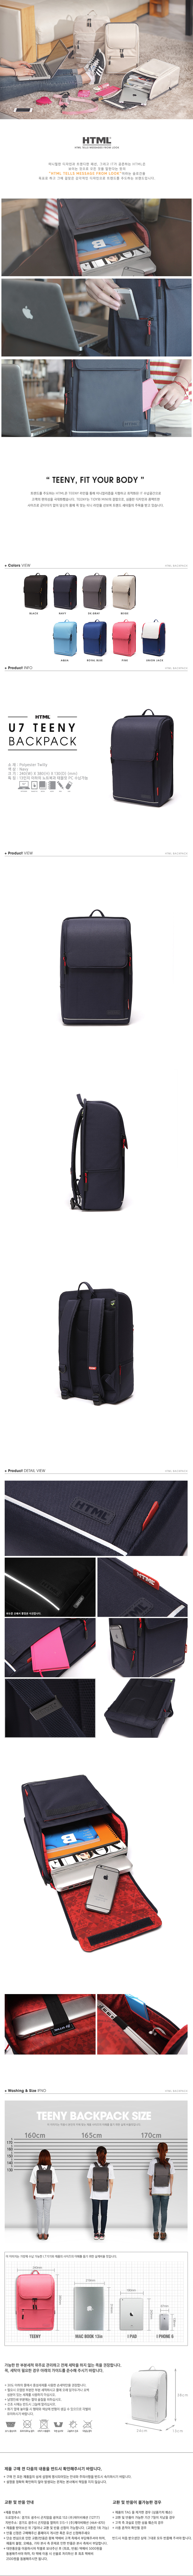 [에이치티엠엘]HTML-NEW U7 WOMAN TEENY Backpack (NAVY) 티니 백팩